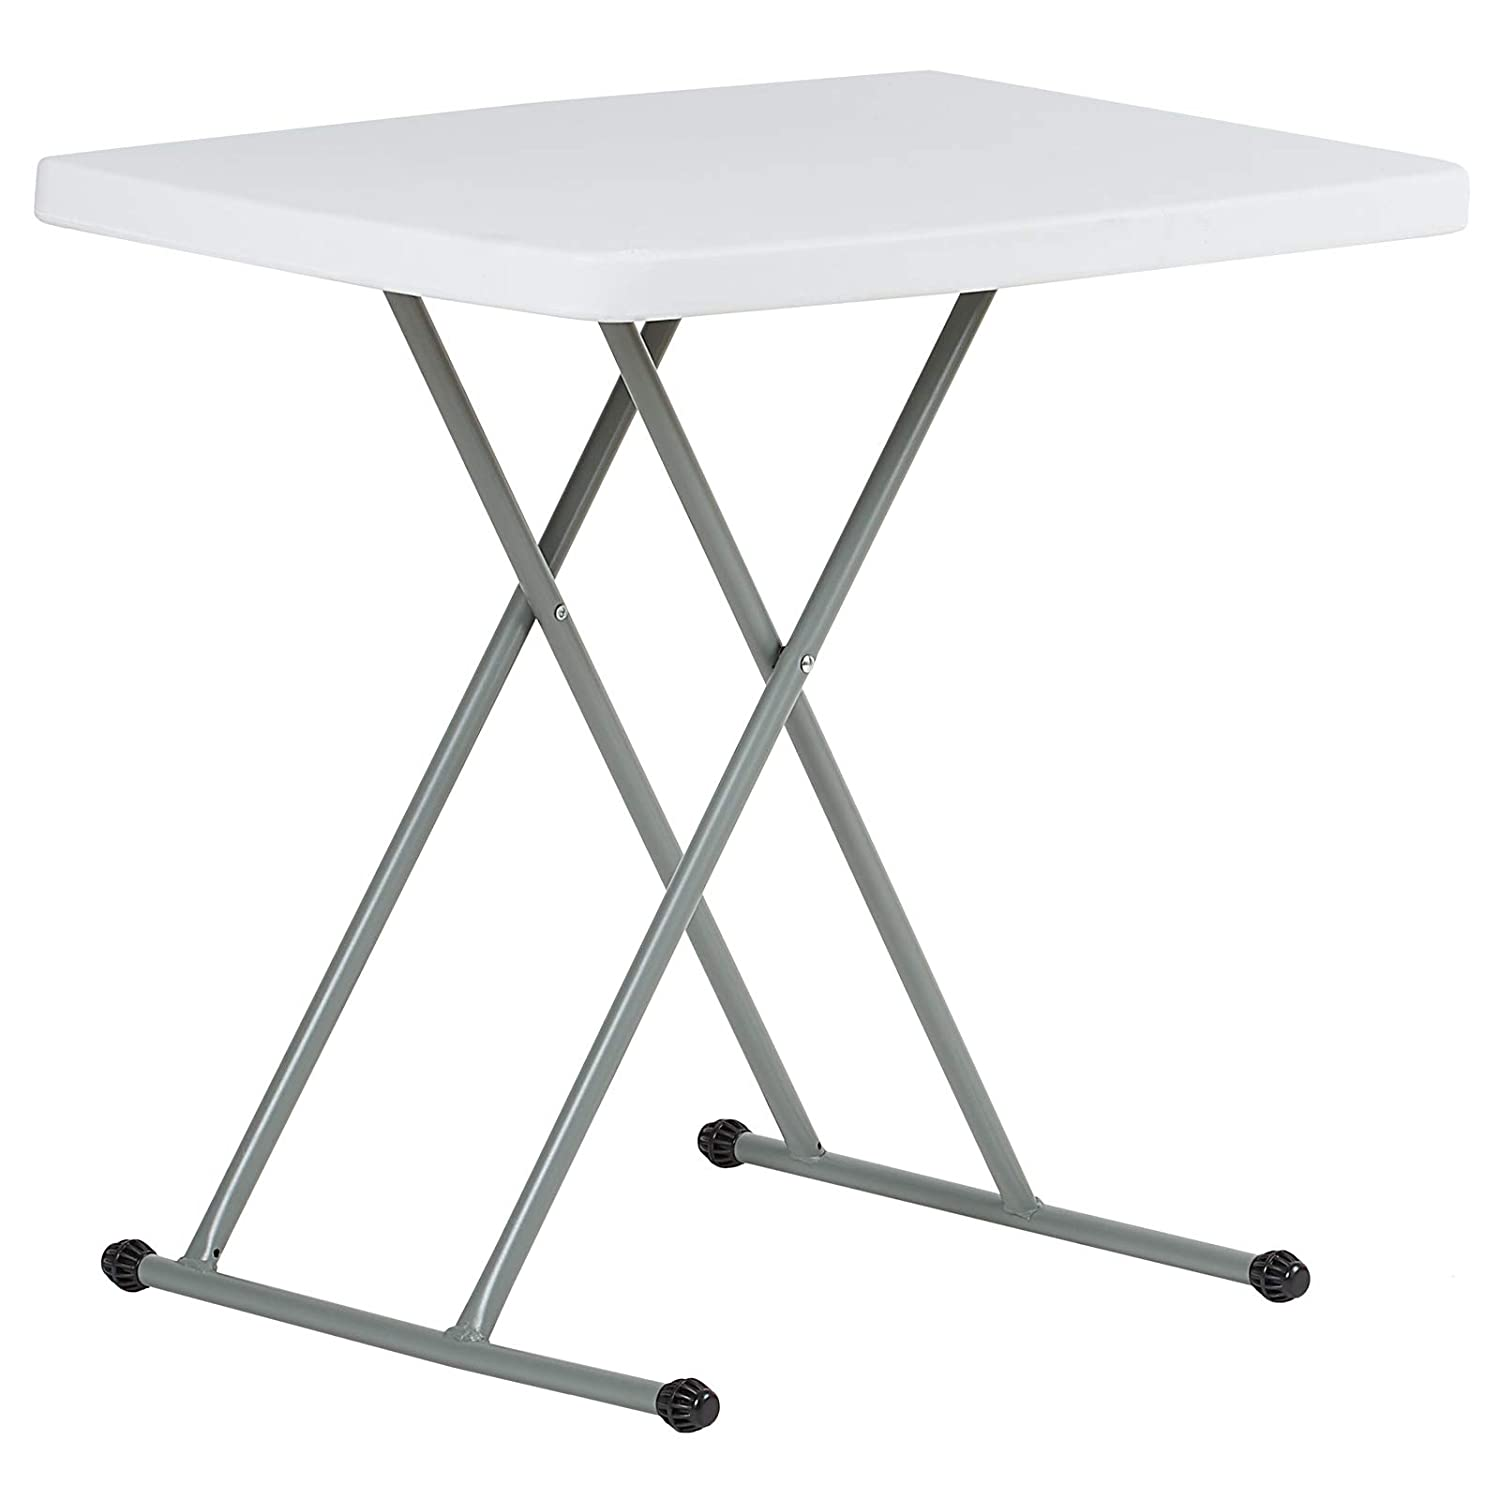 Hartleys 2.5ft Adjustable Height Folding Table - Portable & Wipe Clean